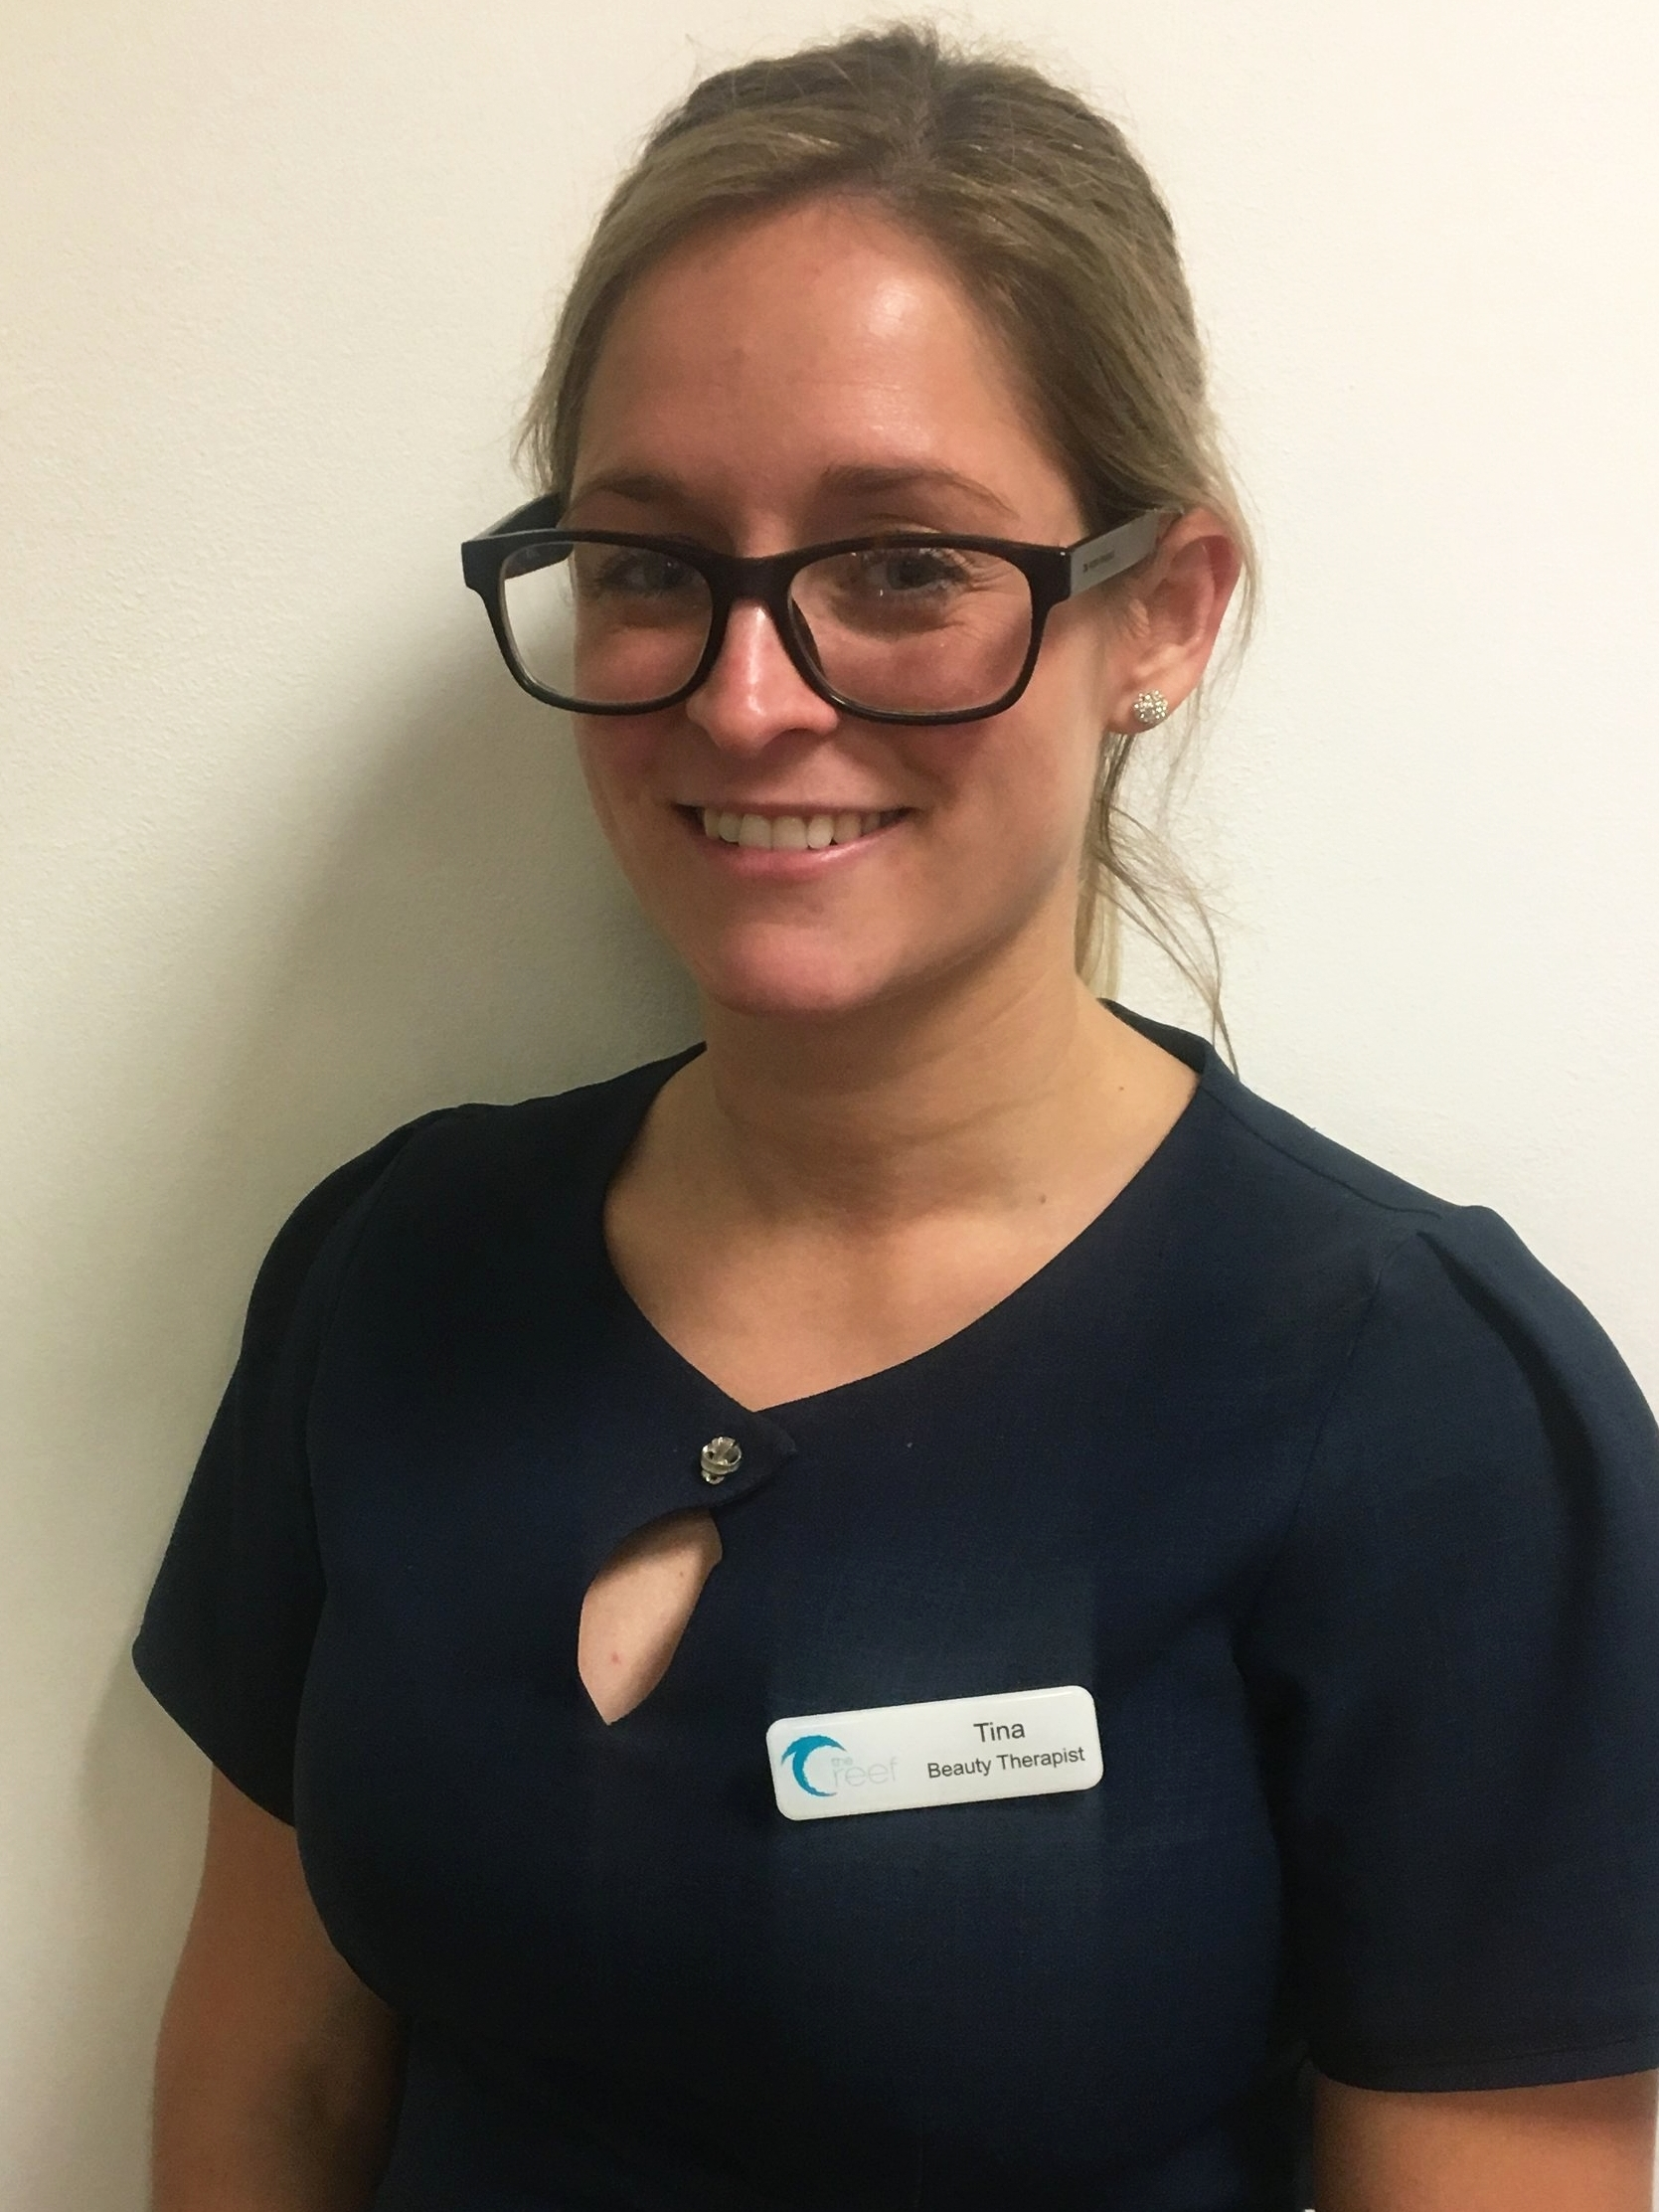 Tina, Beauty Therapist - Tina is happy, considerate and a complete perfectionist. After having a career change, Tina came back to her true passion, which is beauty.Tina is also our CACI facial specialist.An excellent therapist who specialises in massage and facials.